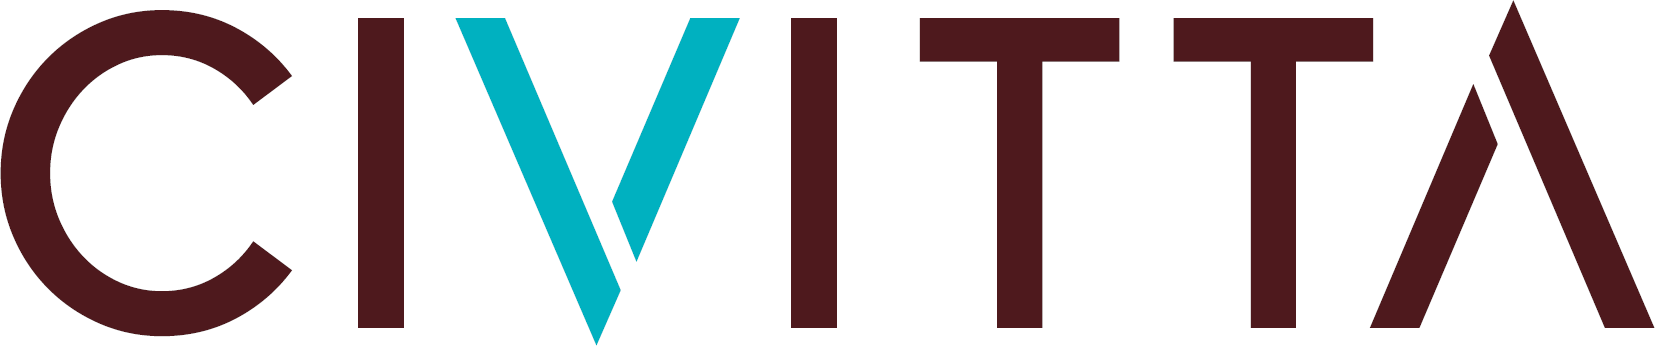 Logo of Civitta UAB.